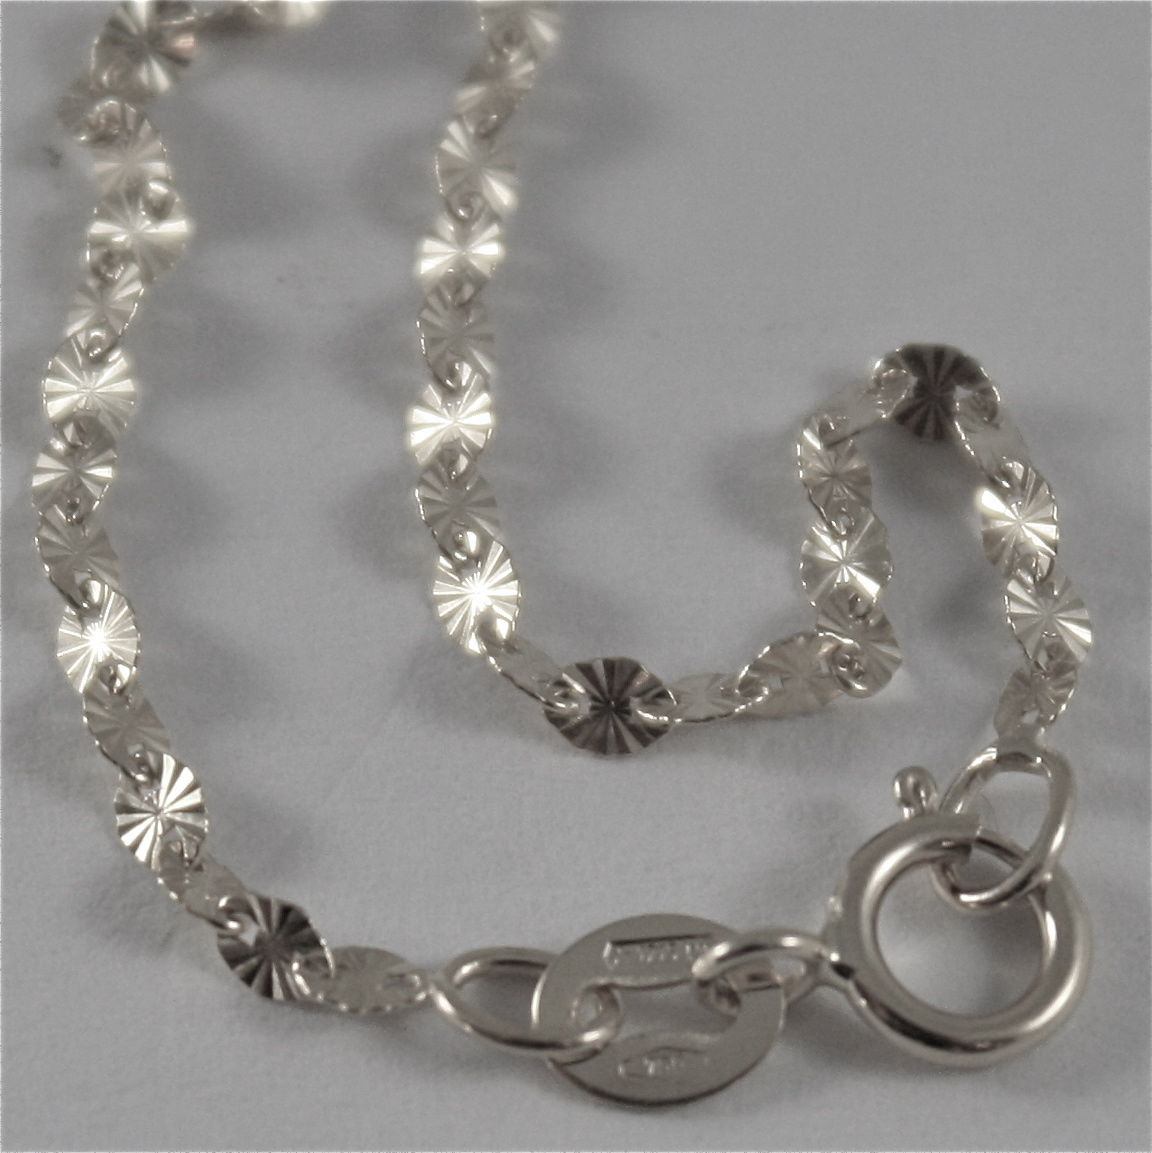 18K WHITE GOLD CHAIN MINI STAR RAYS OVAL LINK 2 MM, 15.75 INCHES MADE IN ITALY